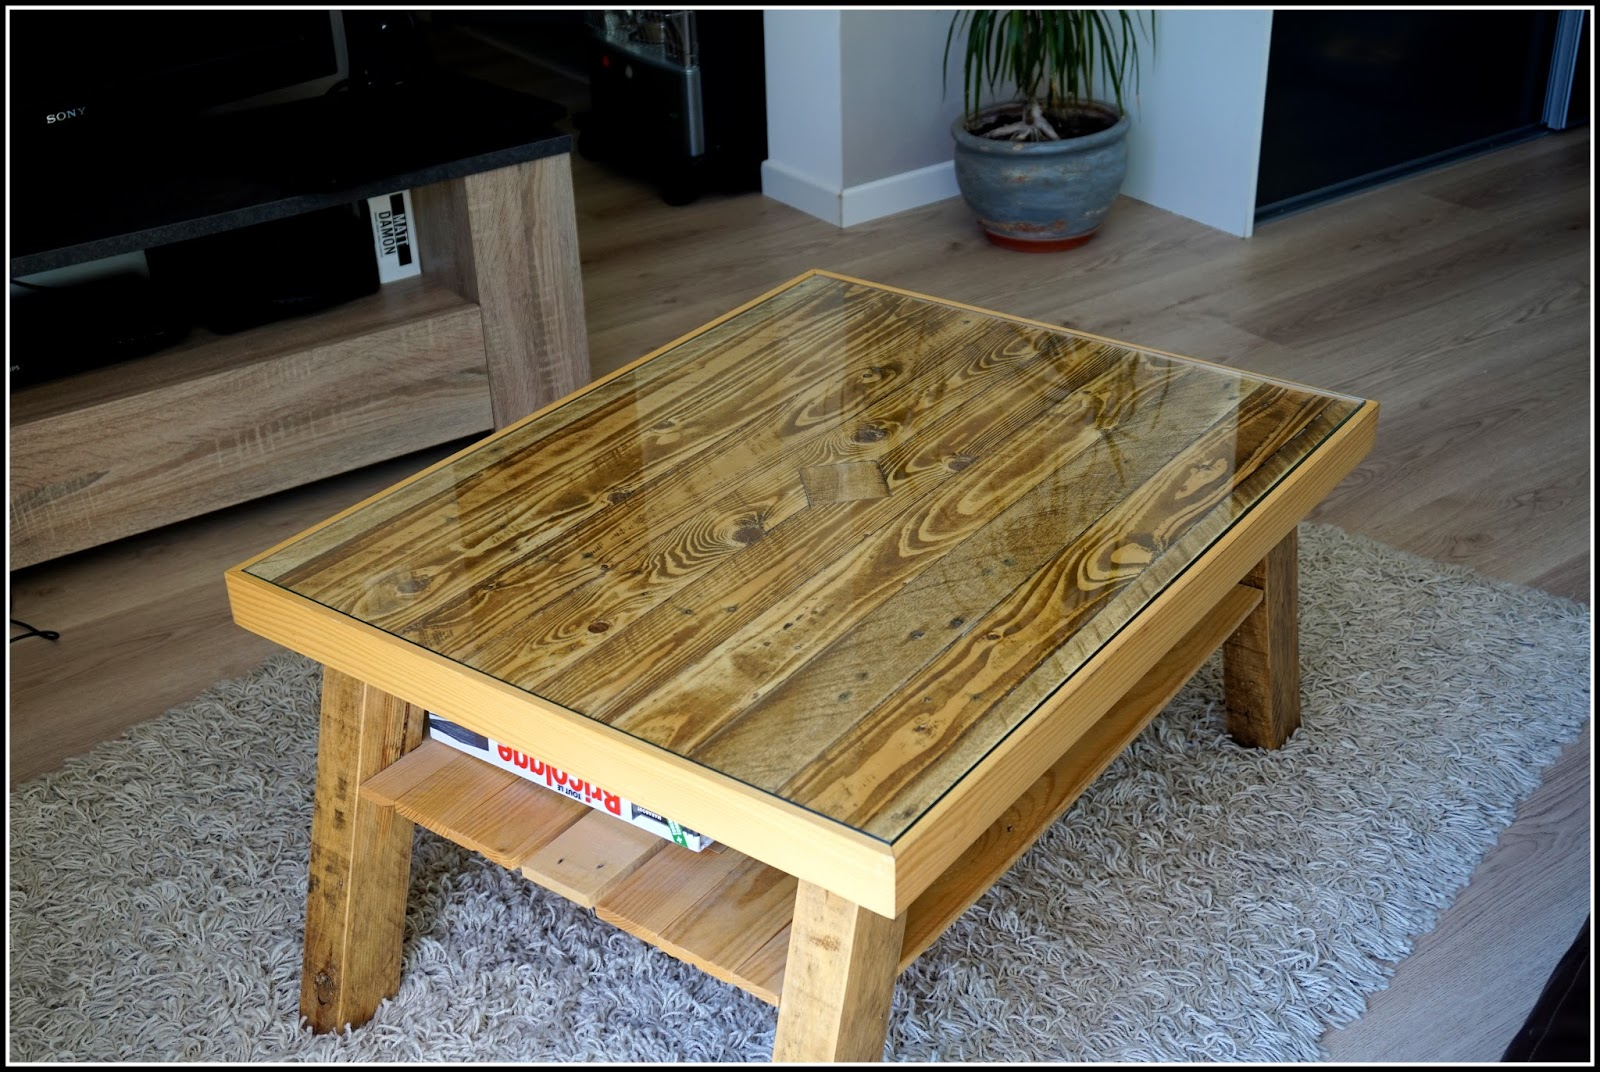 Faire sa table basse - Comment fabriquer une table basse en palette ...